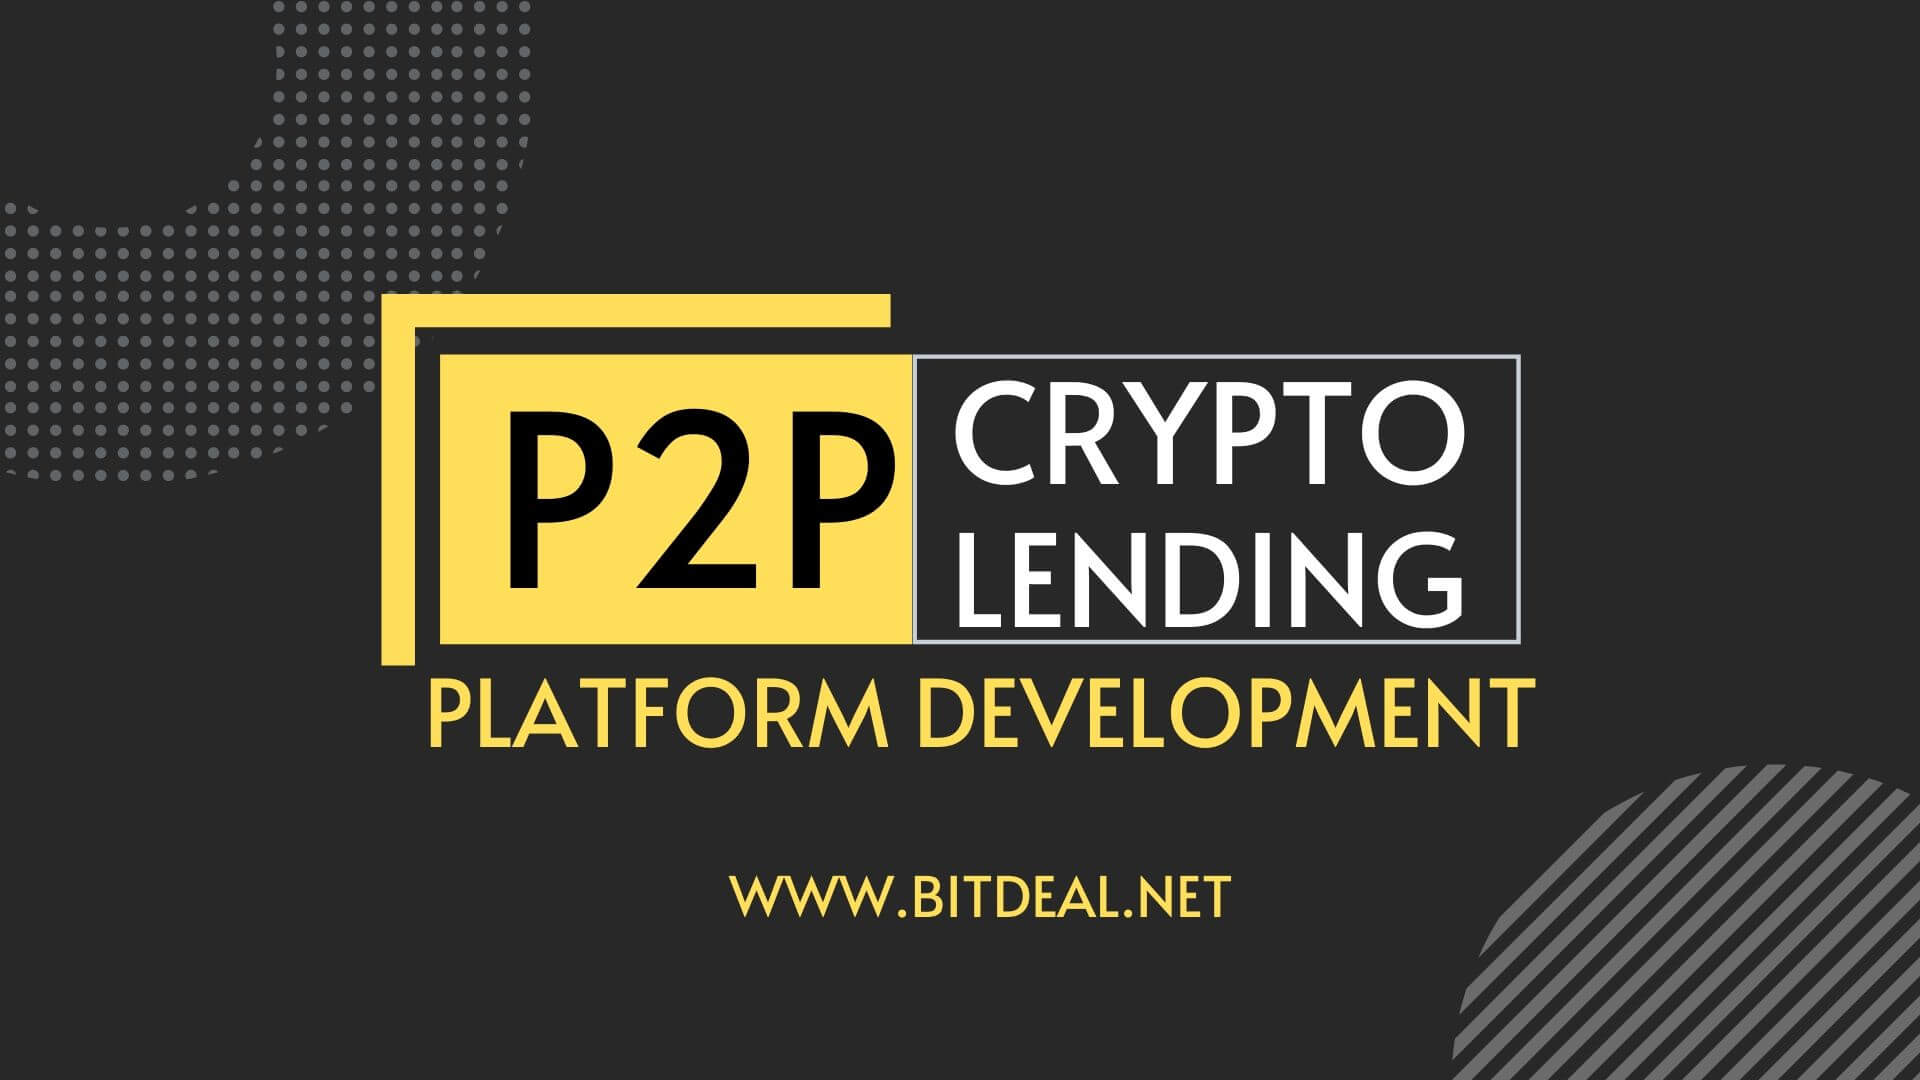 P2P Cryptocurrency Lending Platform Development Company